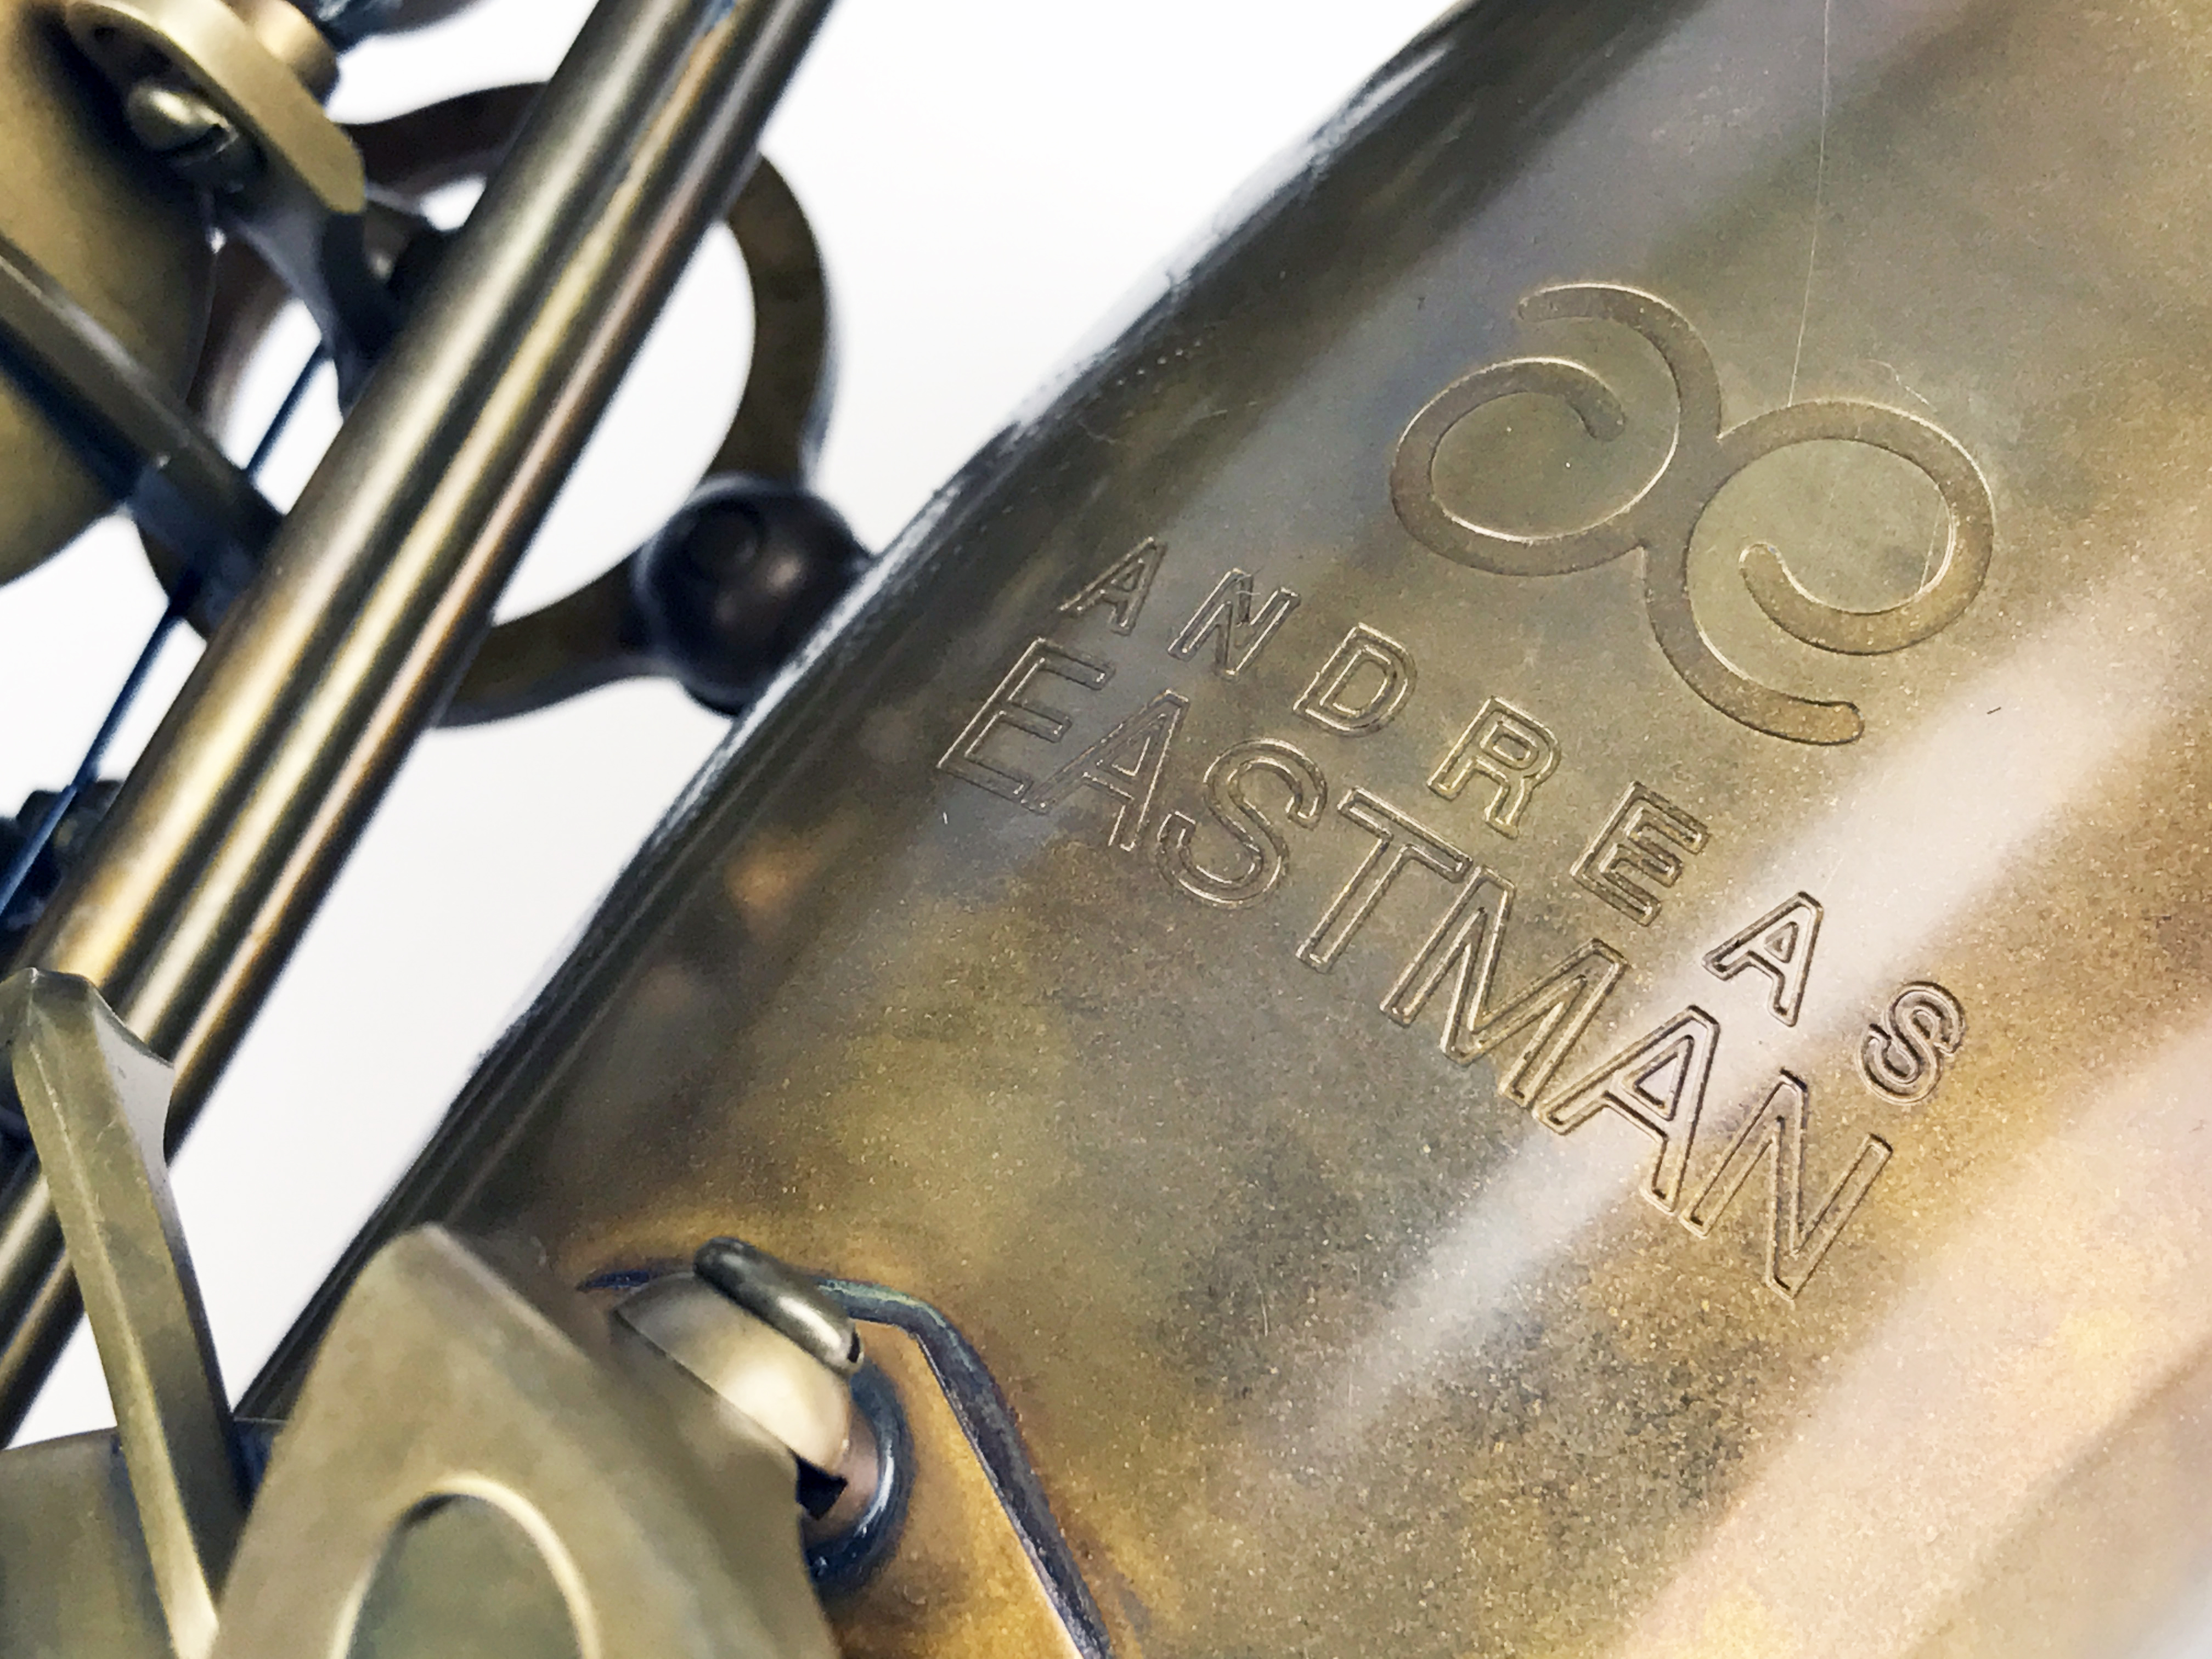 Logo of Eastman brand on the bell of a Eastman 52nd Alto Saxophone EAS652RL